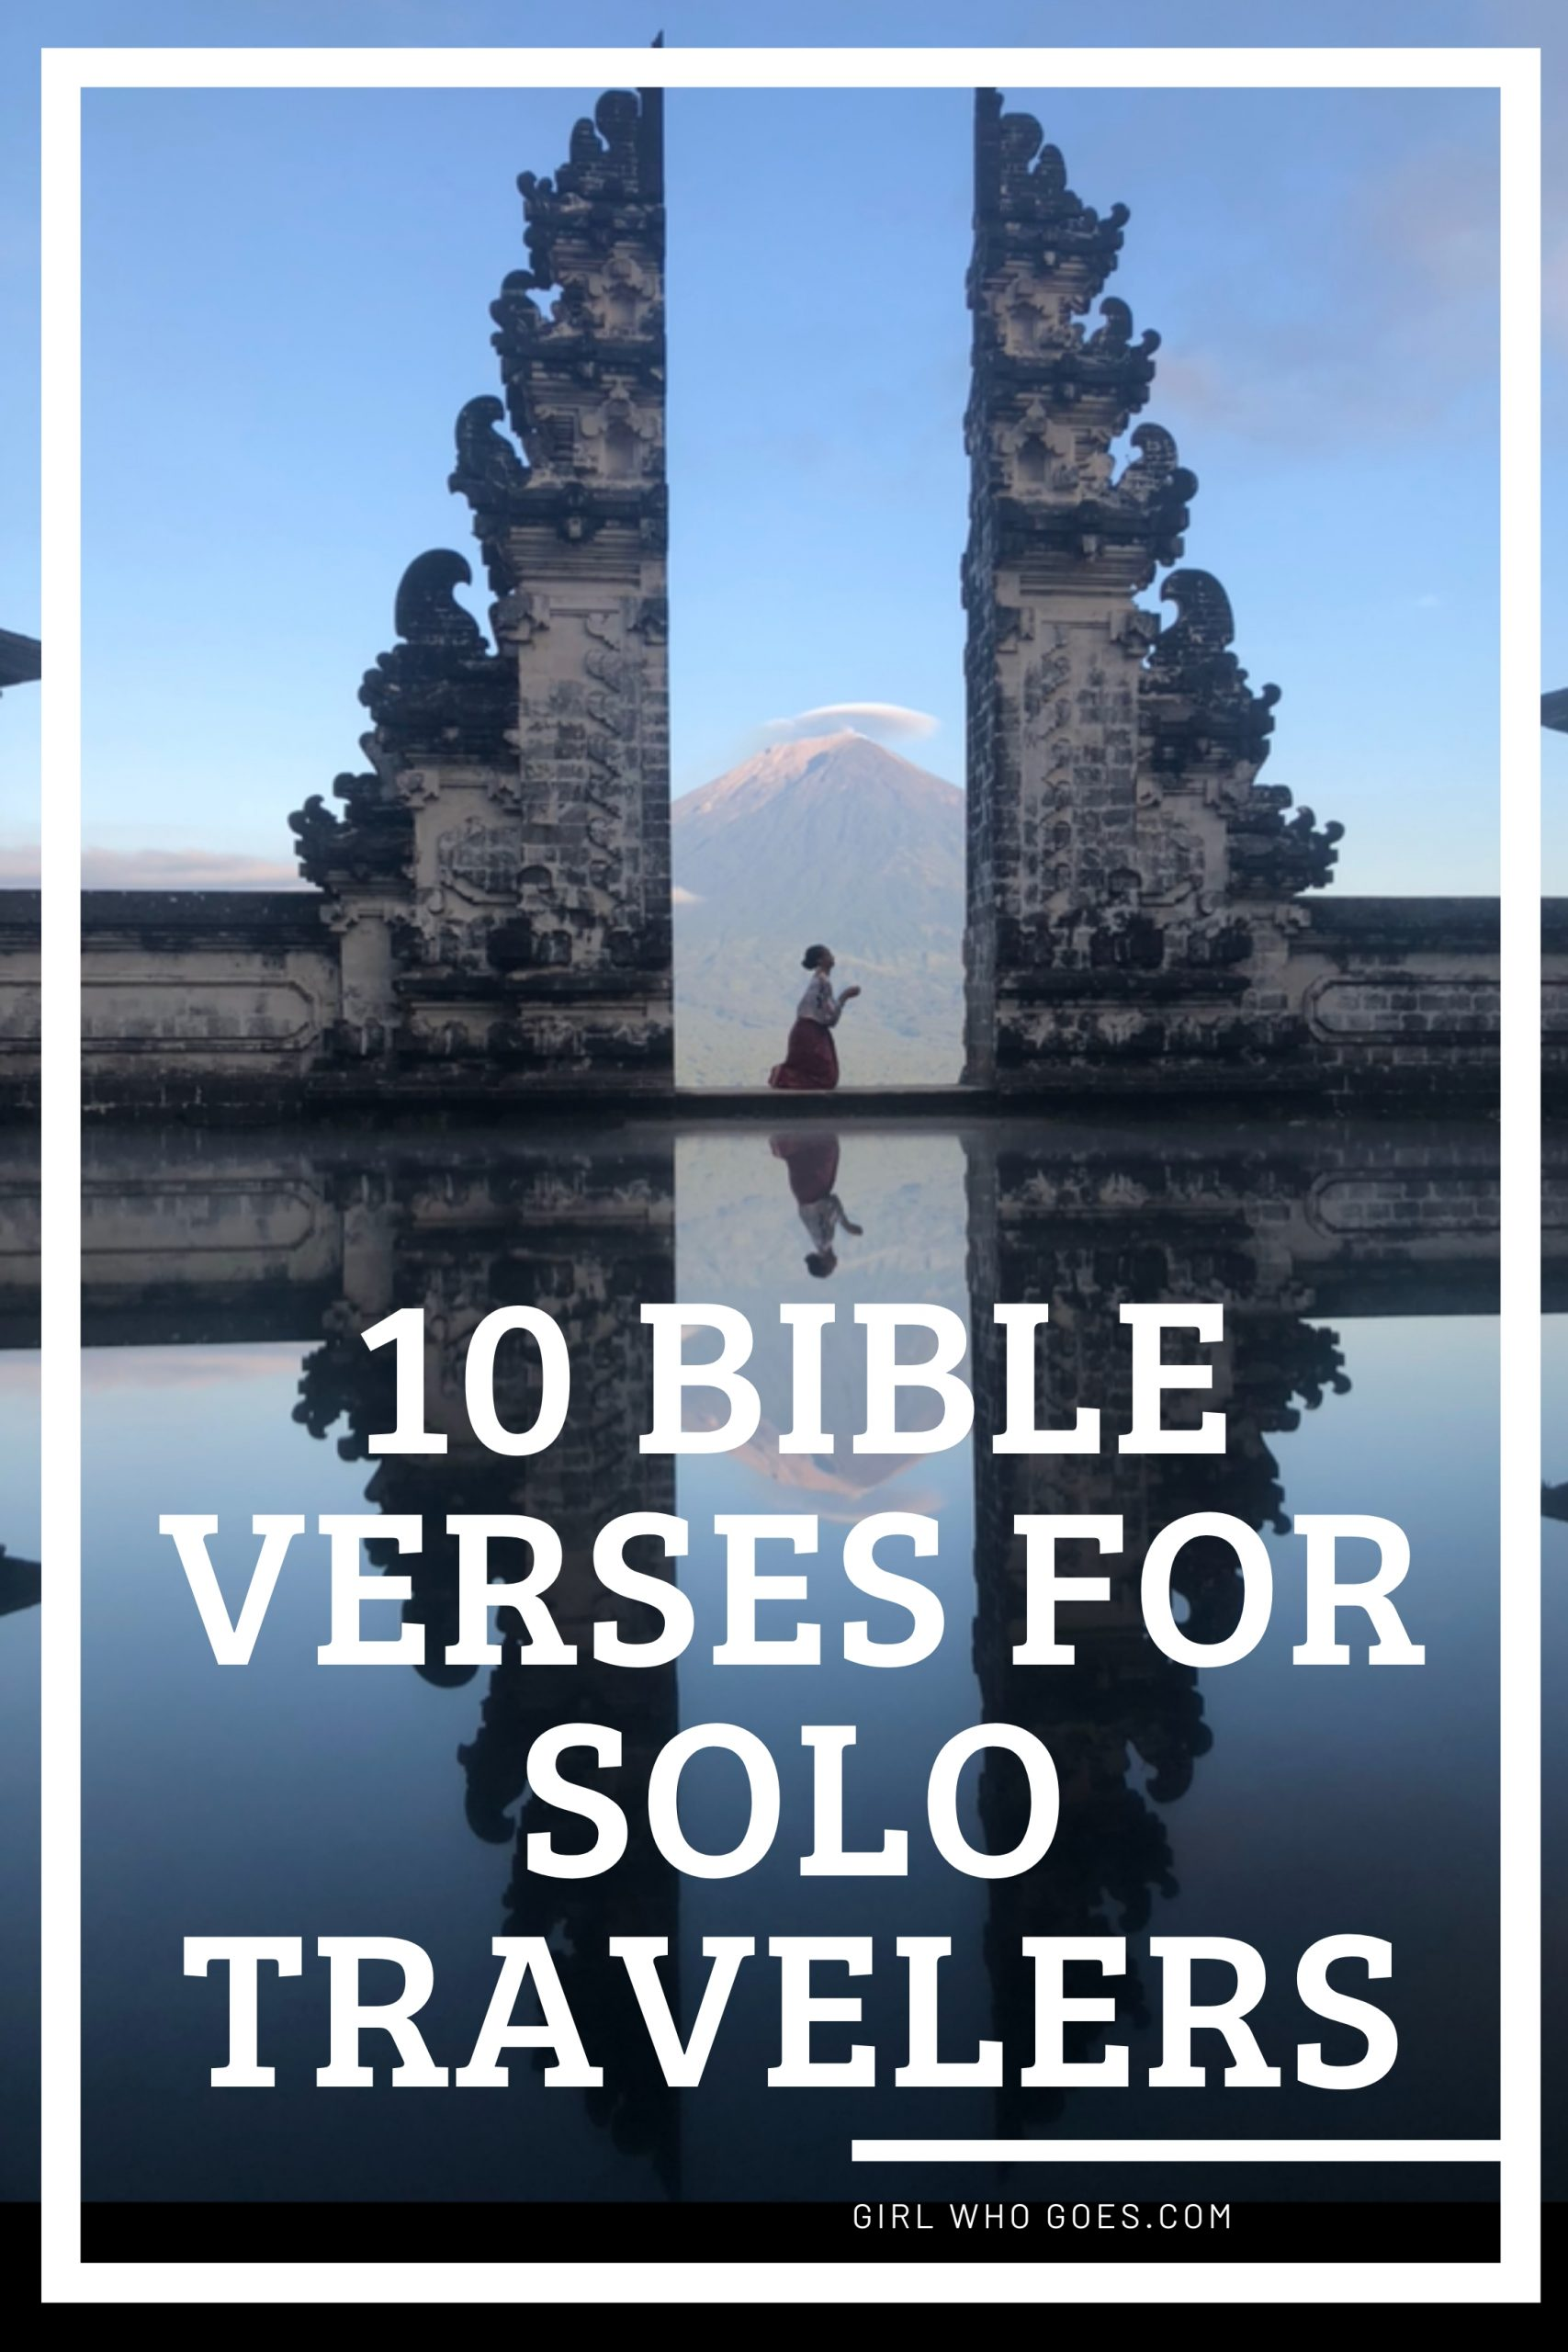 10 Bible Verses for Solo Travelers